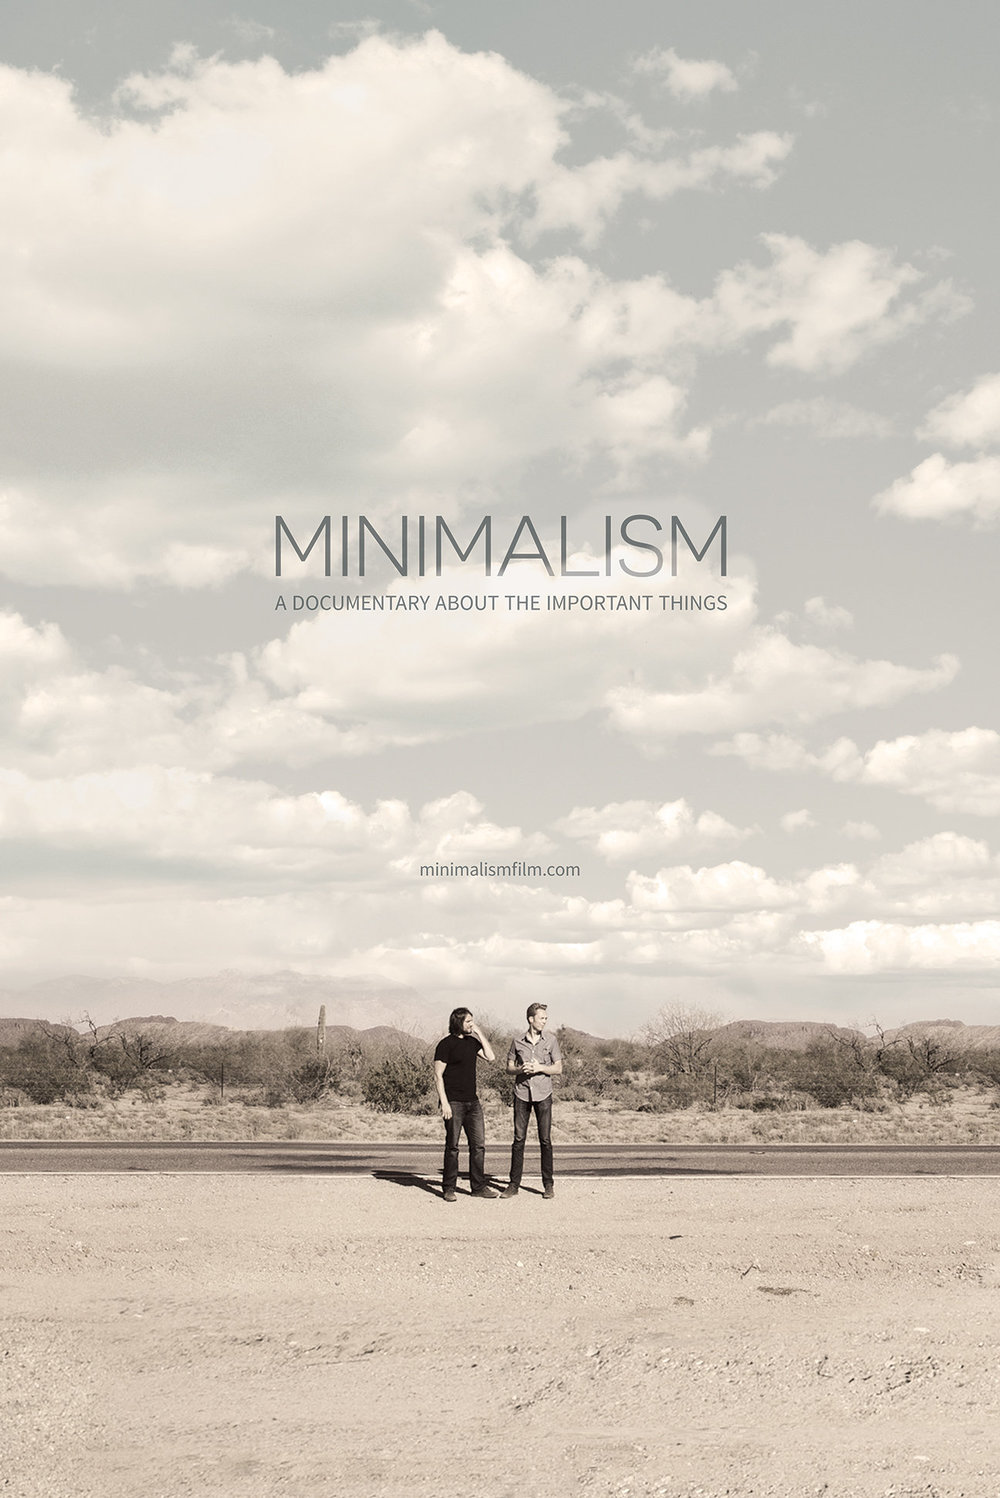 Minimalism: A documentary about the important things - If you aren't into reading, check out this documentary about minimalism. After watching this I really began to understand this concept and what kind of freedom can come along with it. Last I checked it was available on Netflix!